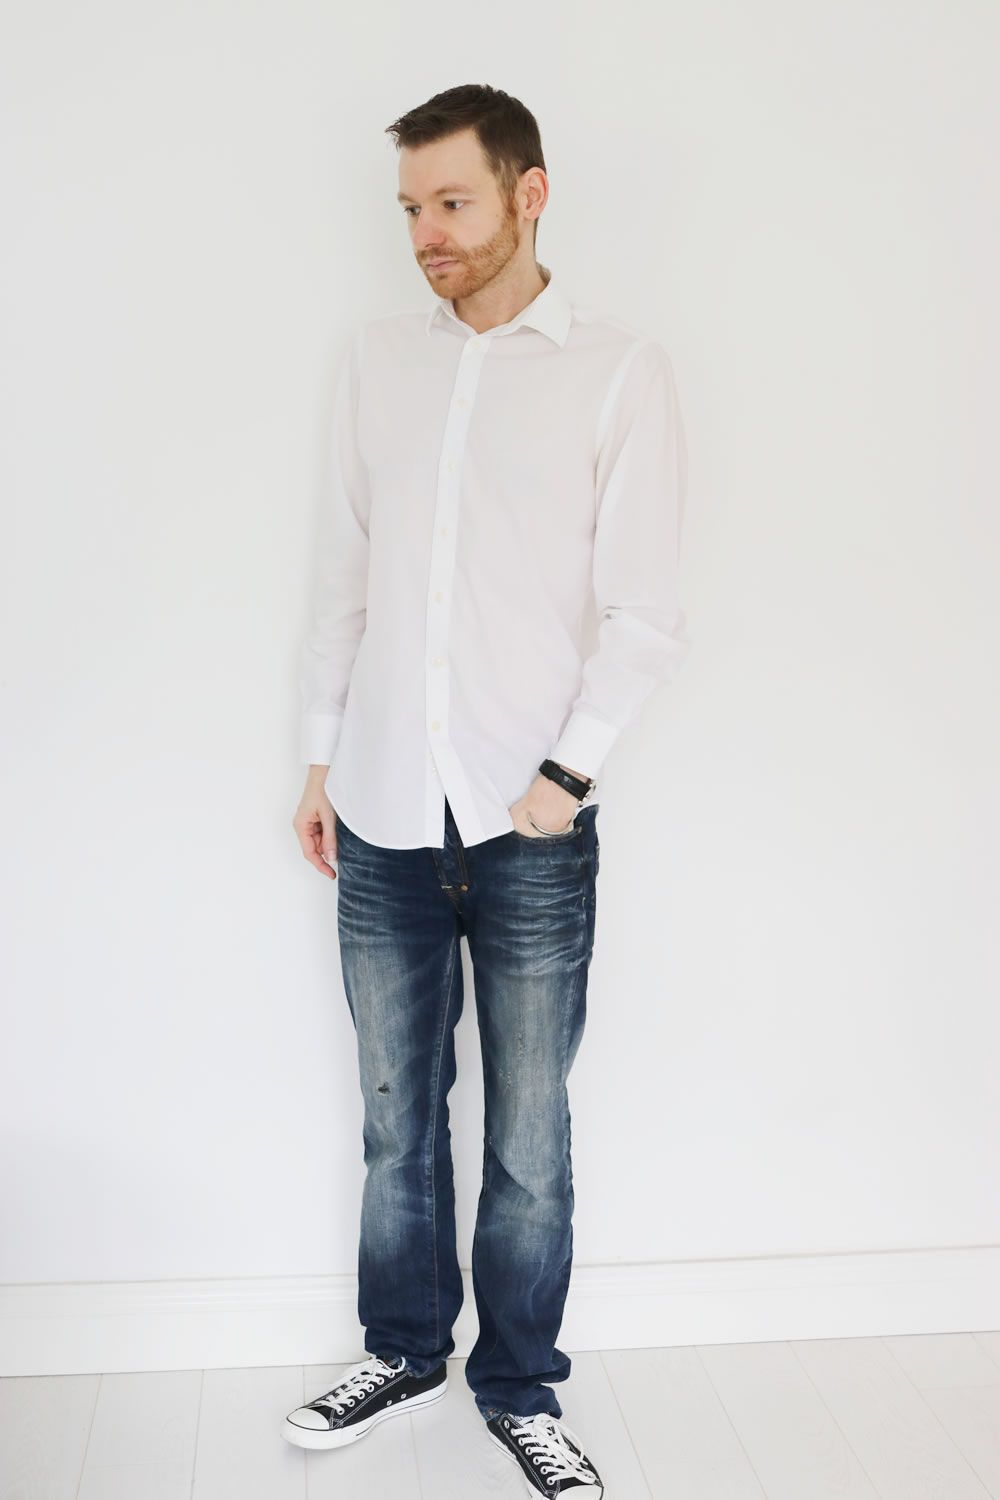 to wear - Casual elegant for men outfits composition ideas video